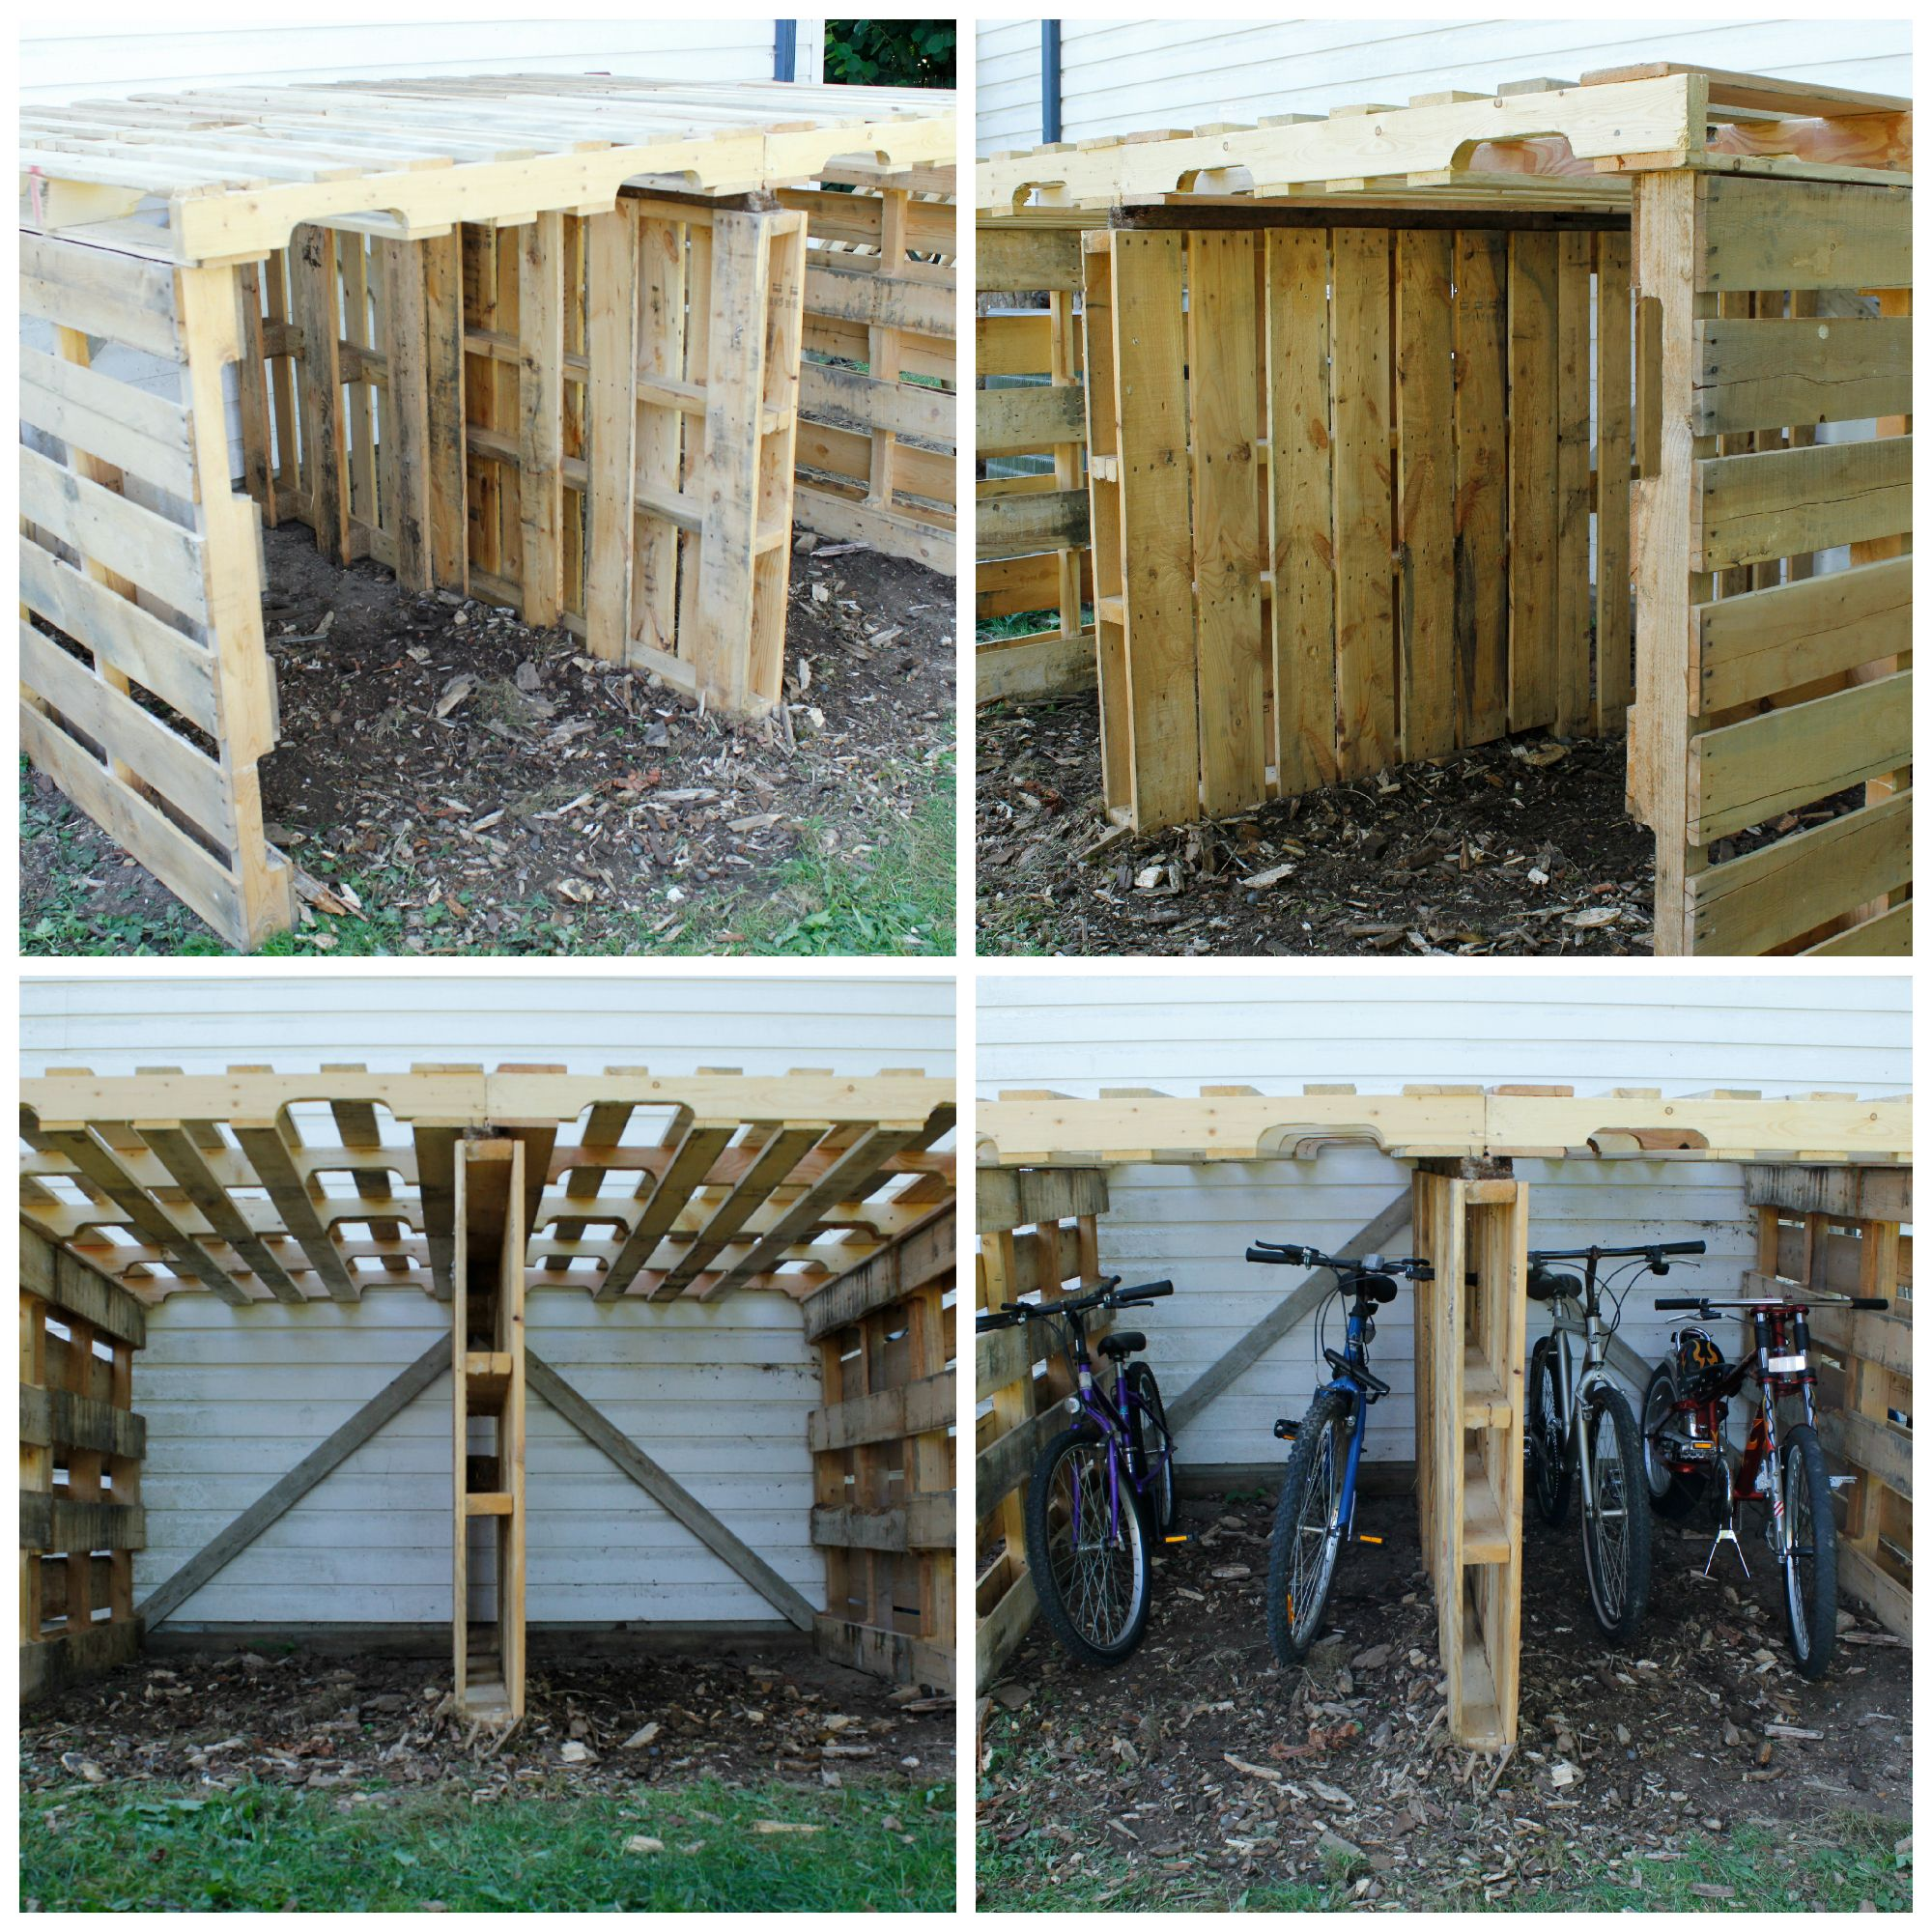 Pin By Karen Mccoy On Cabin Trailer And Garden Ideas Bike Storage Diy Outside Bike Storage Bike Storage Wood